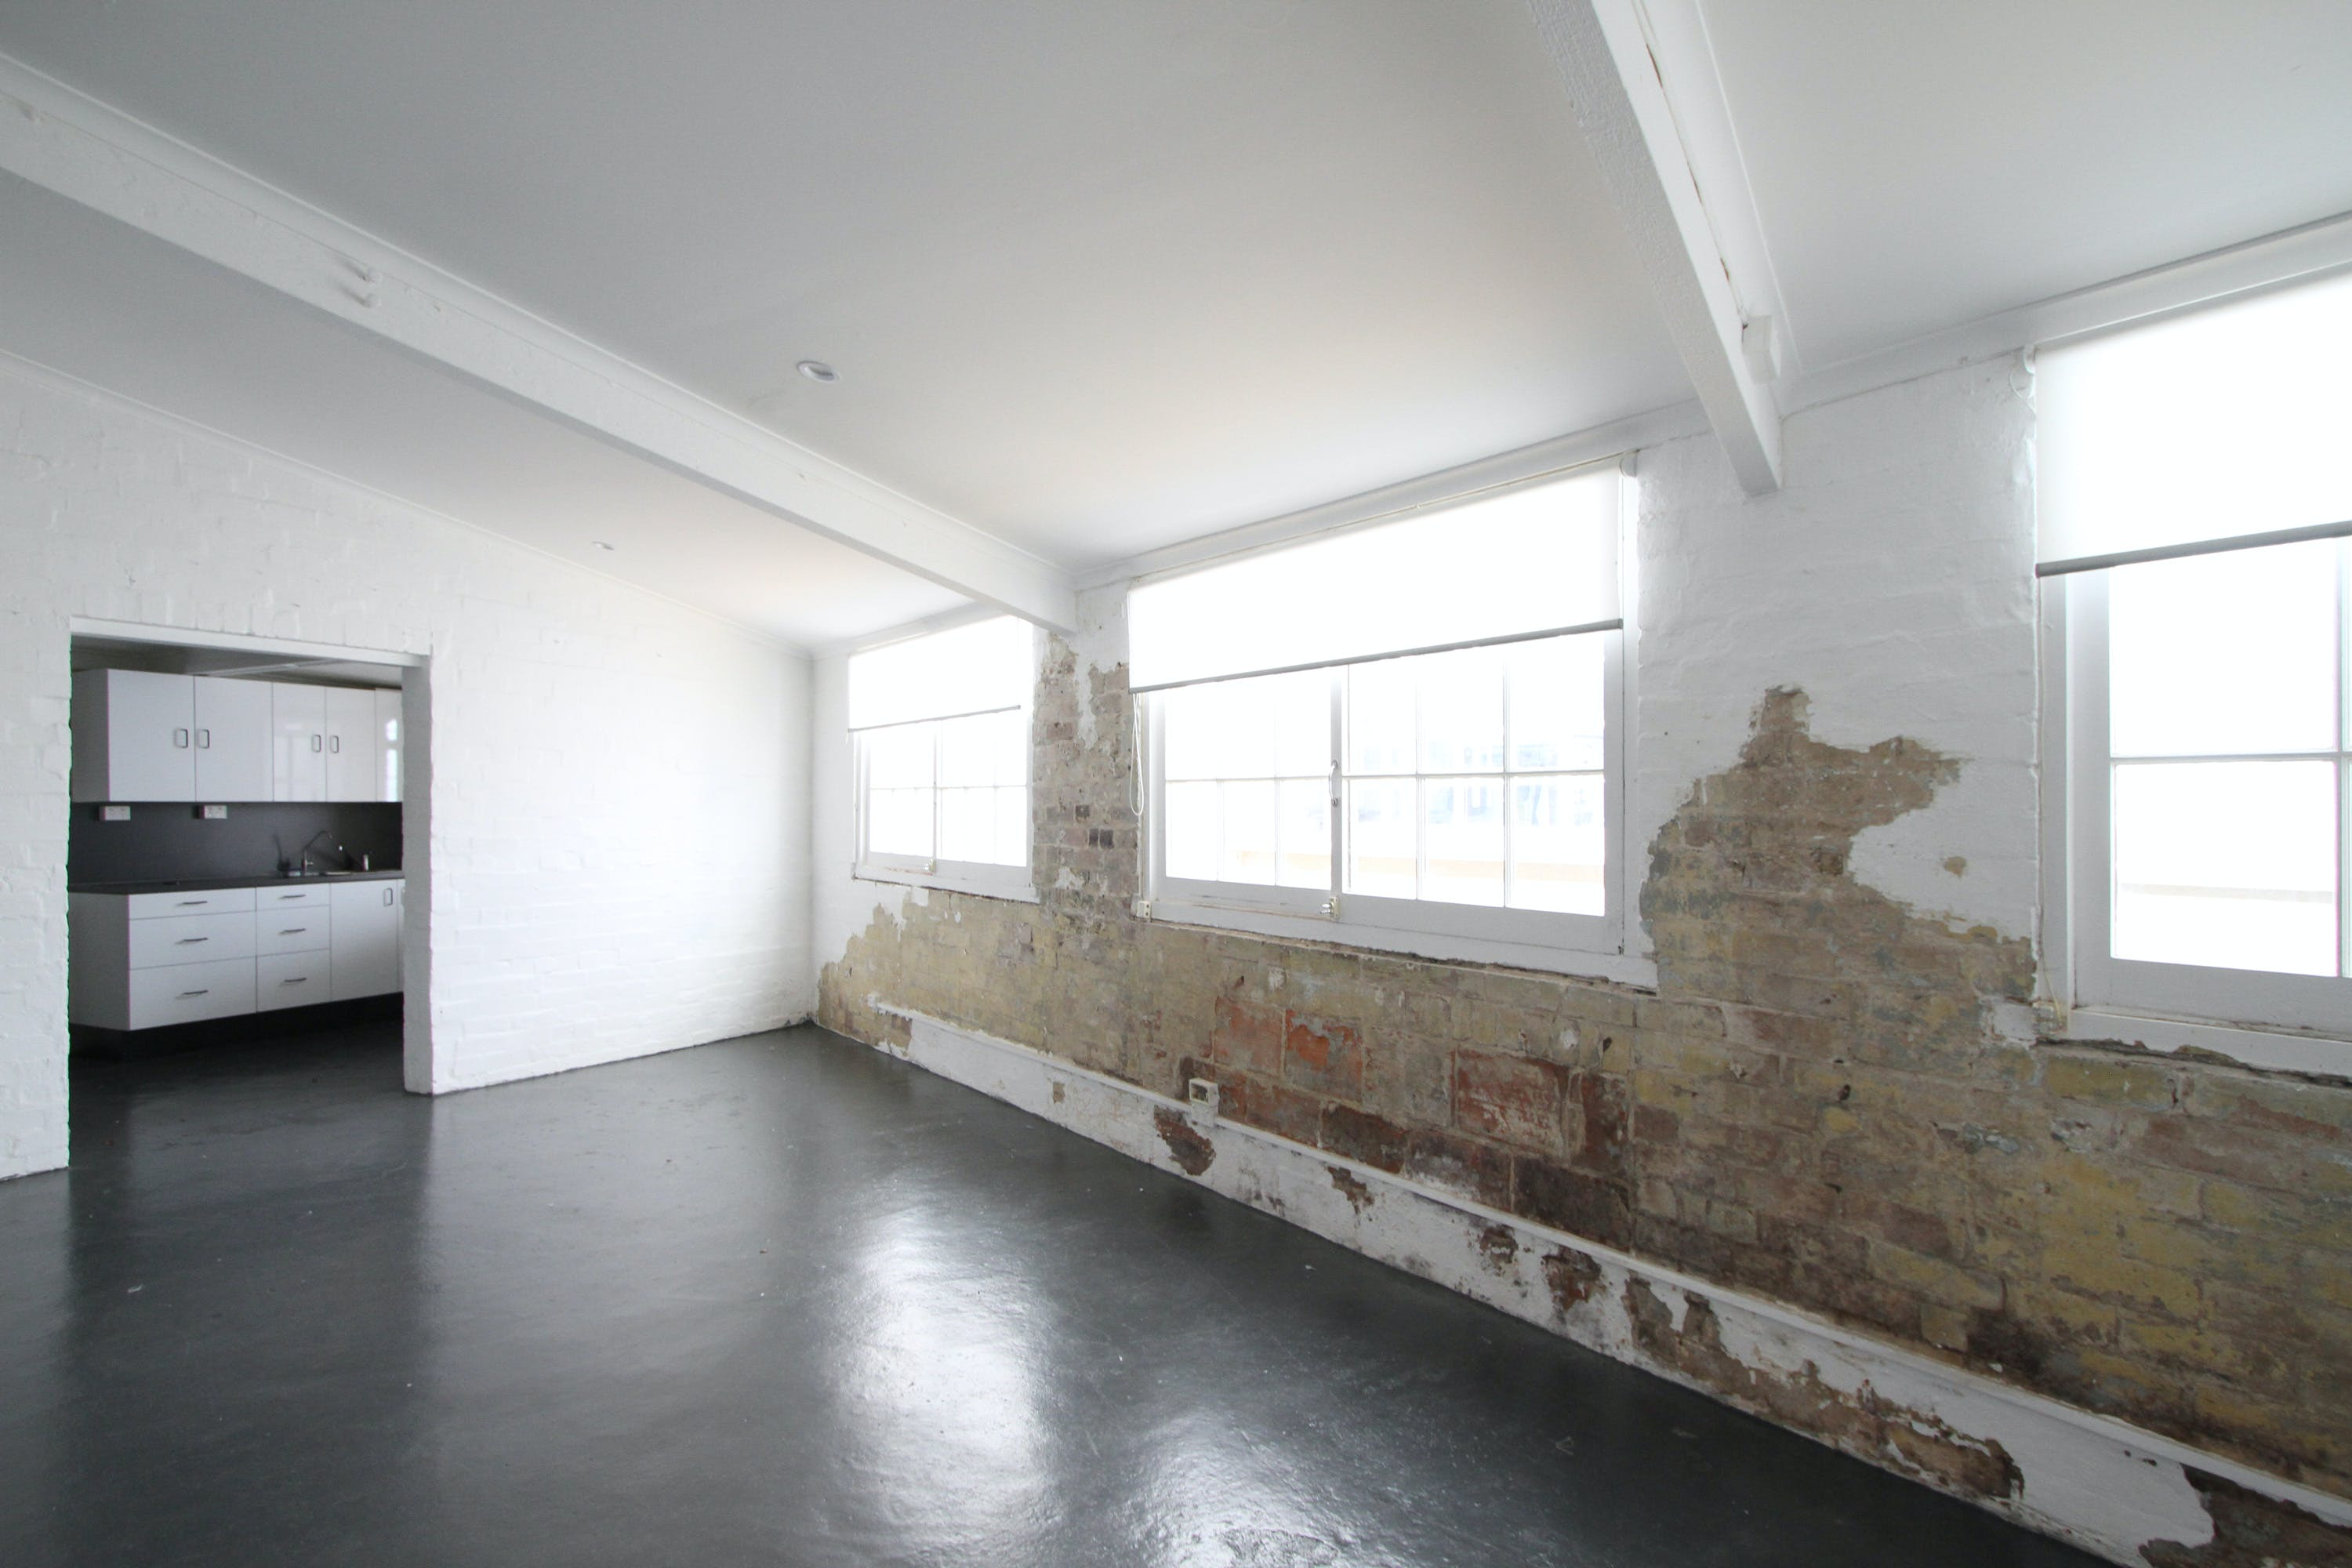 Annexe, multi-use area at Comber Street Studios, image 7